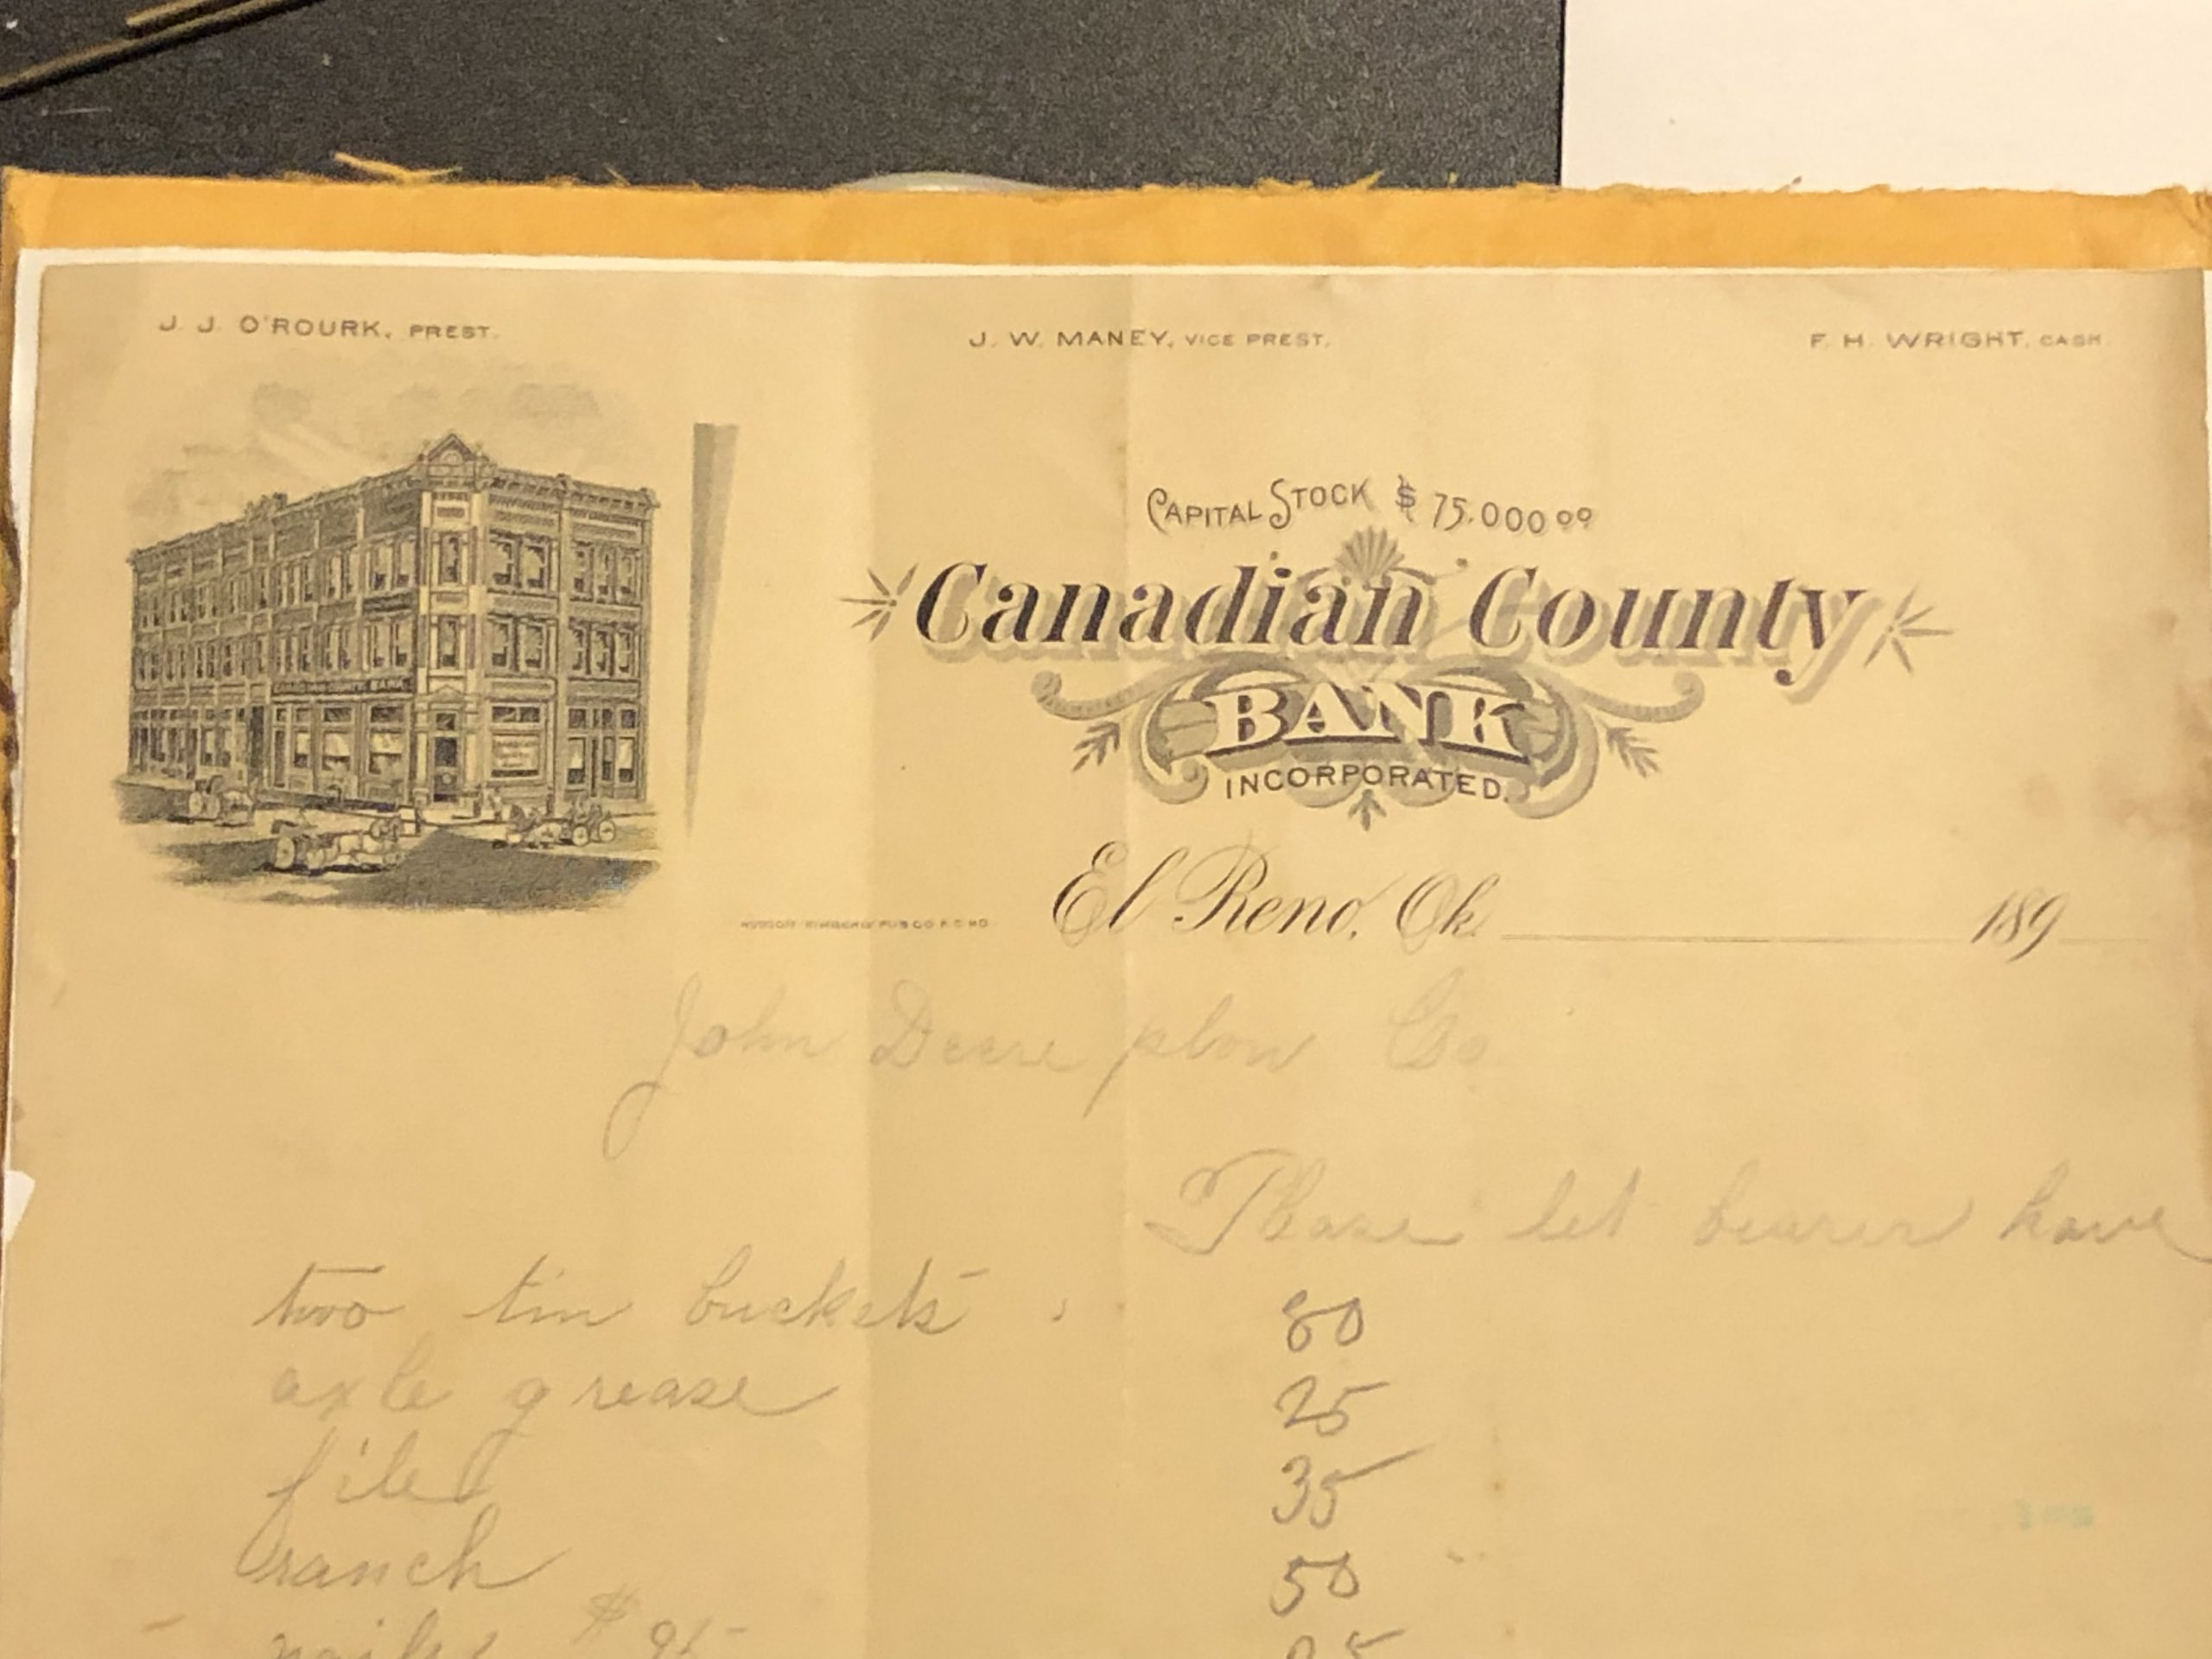 Canadian County Bank Letterhead cropped Tommy Neathery Collection